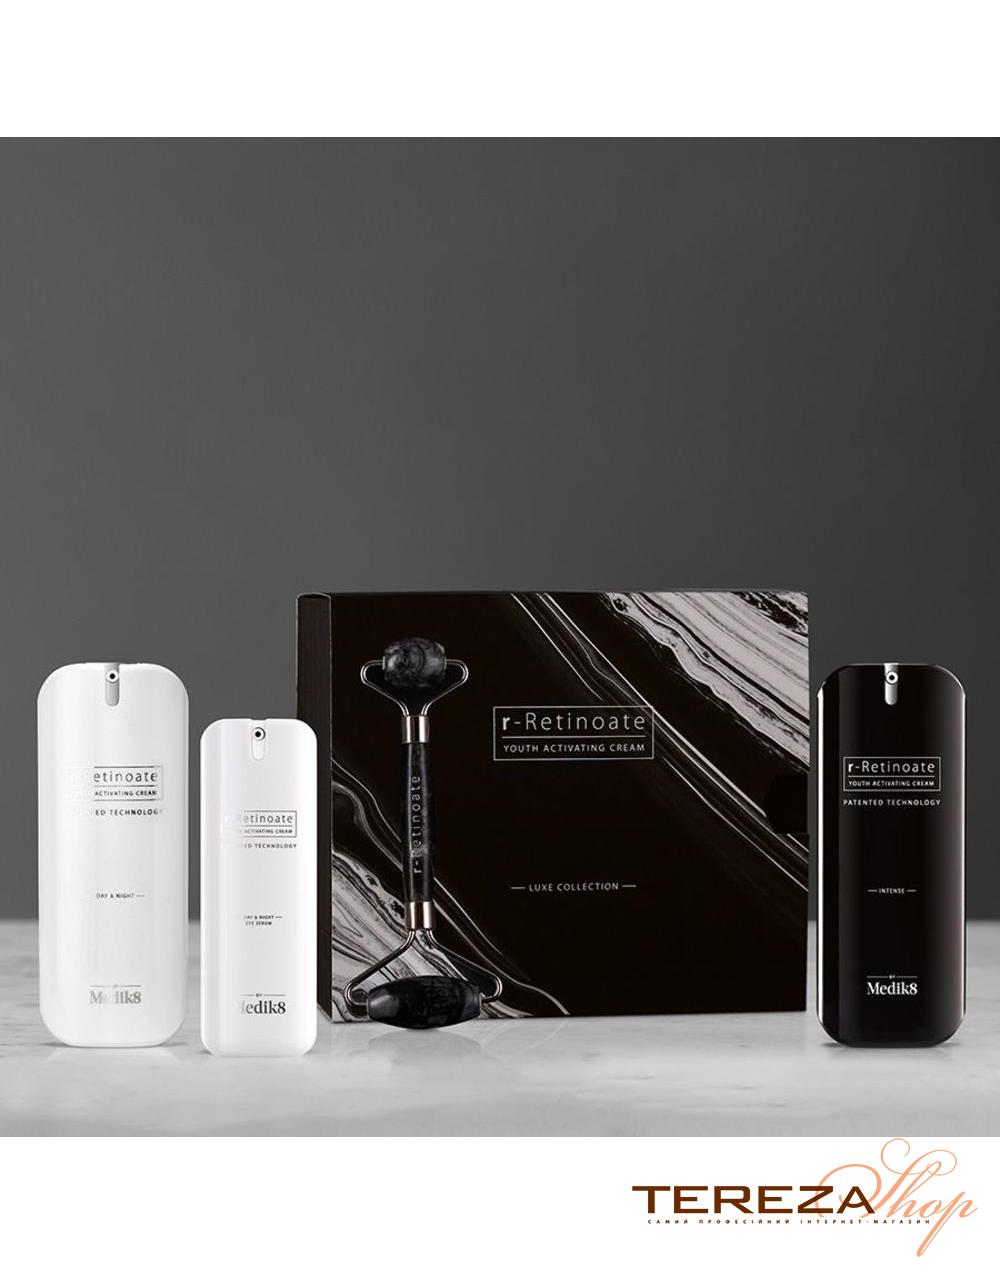 R-RETINOATE LUXE COLLECTION MEDIK8 | Tereza Shop